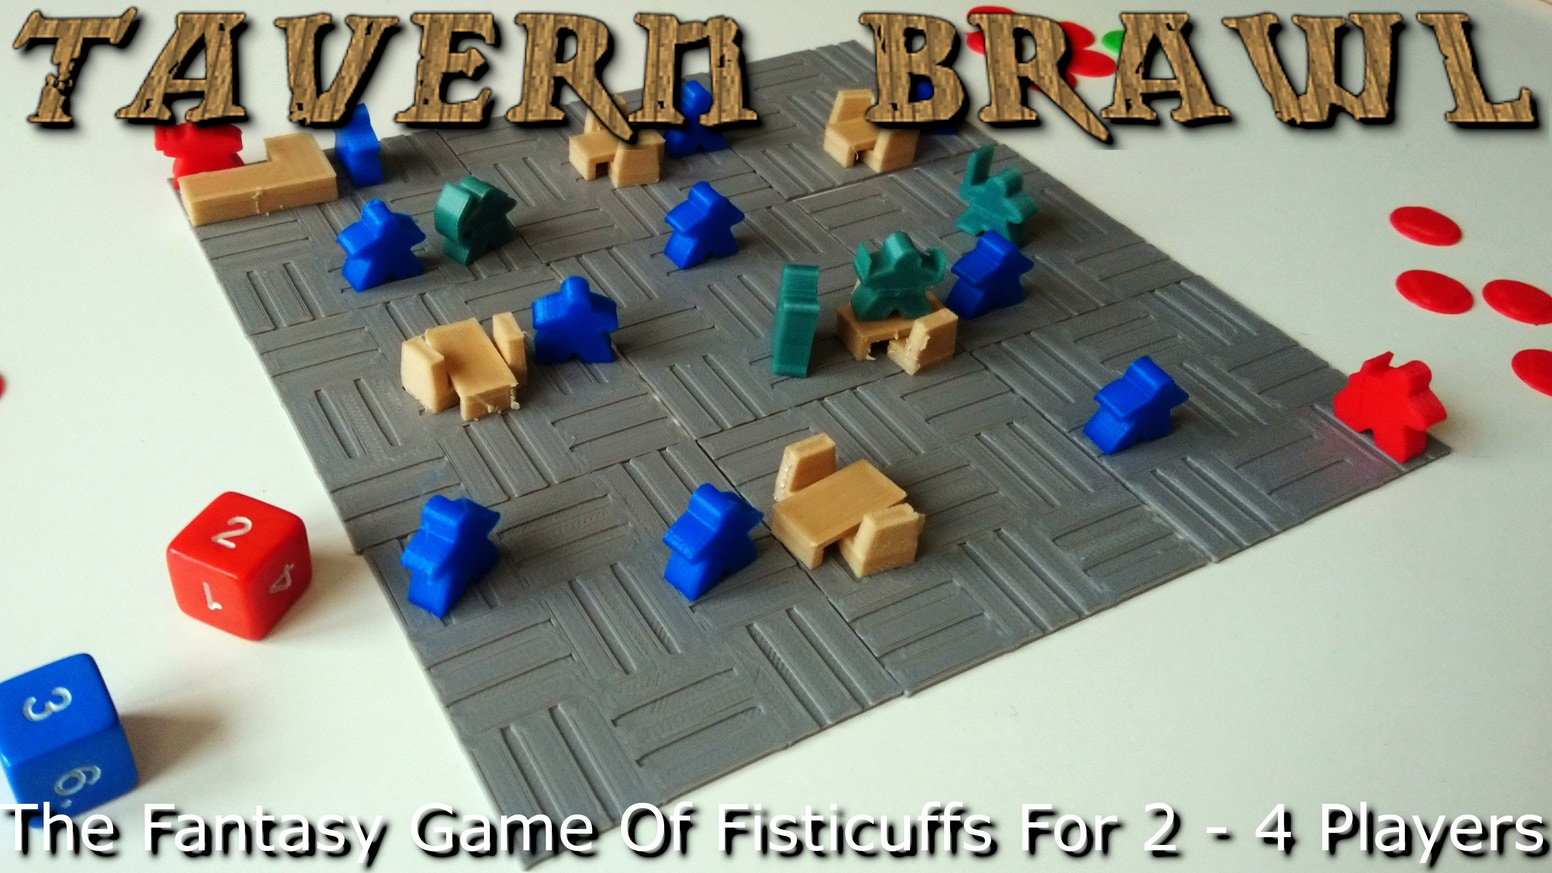 The Fantasy Game of Fisticuffs For 2 - 4 Players